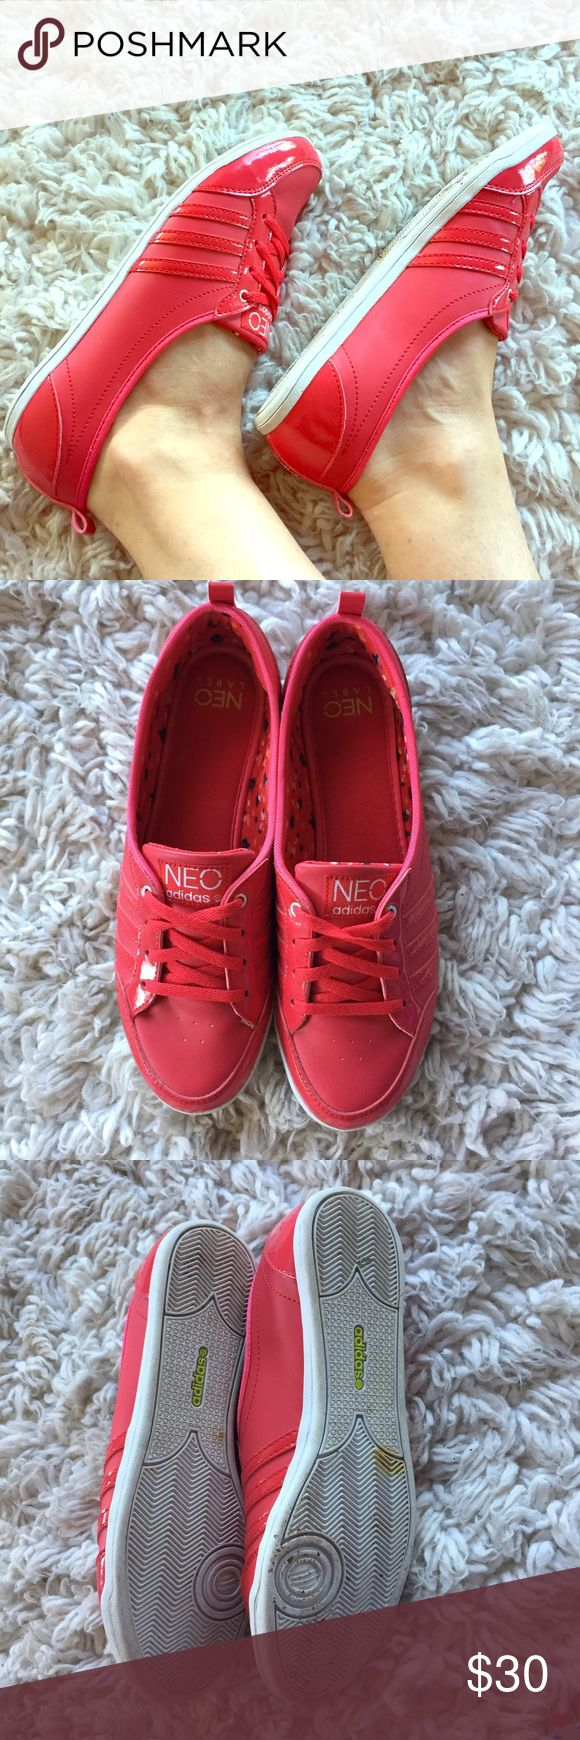 Adidas Neo red sneakers  Cute red adidas Neo sneakers. The are like ballerinas super comfy and cute. I cut the laces to make them shorter. Wore them 5 times. I will clean the soles! Bought them in Germany  Adidas Shoes Sneakers